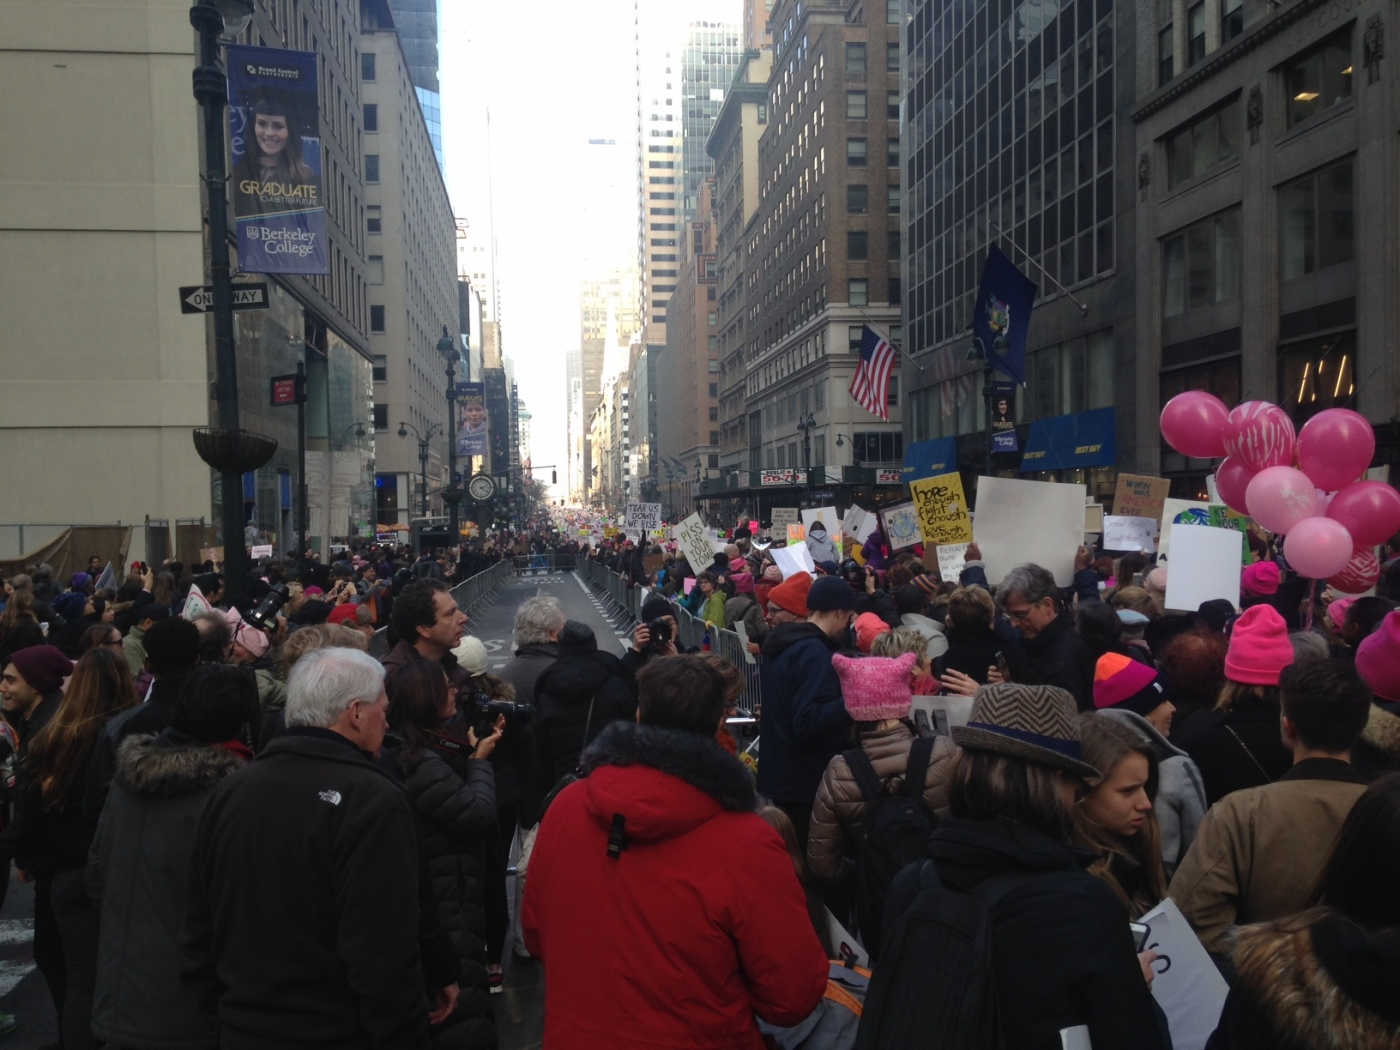 NYC marches!